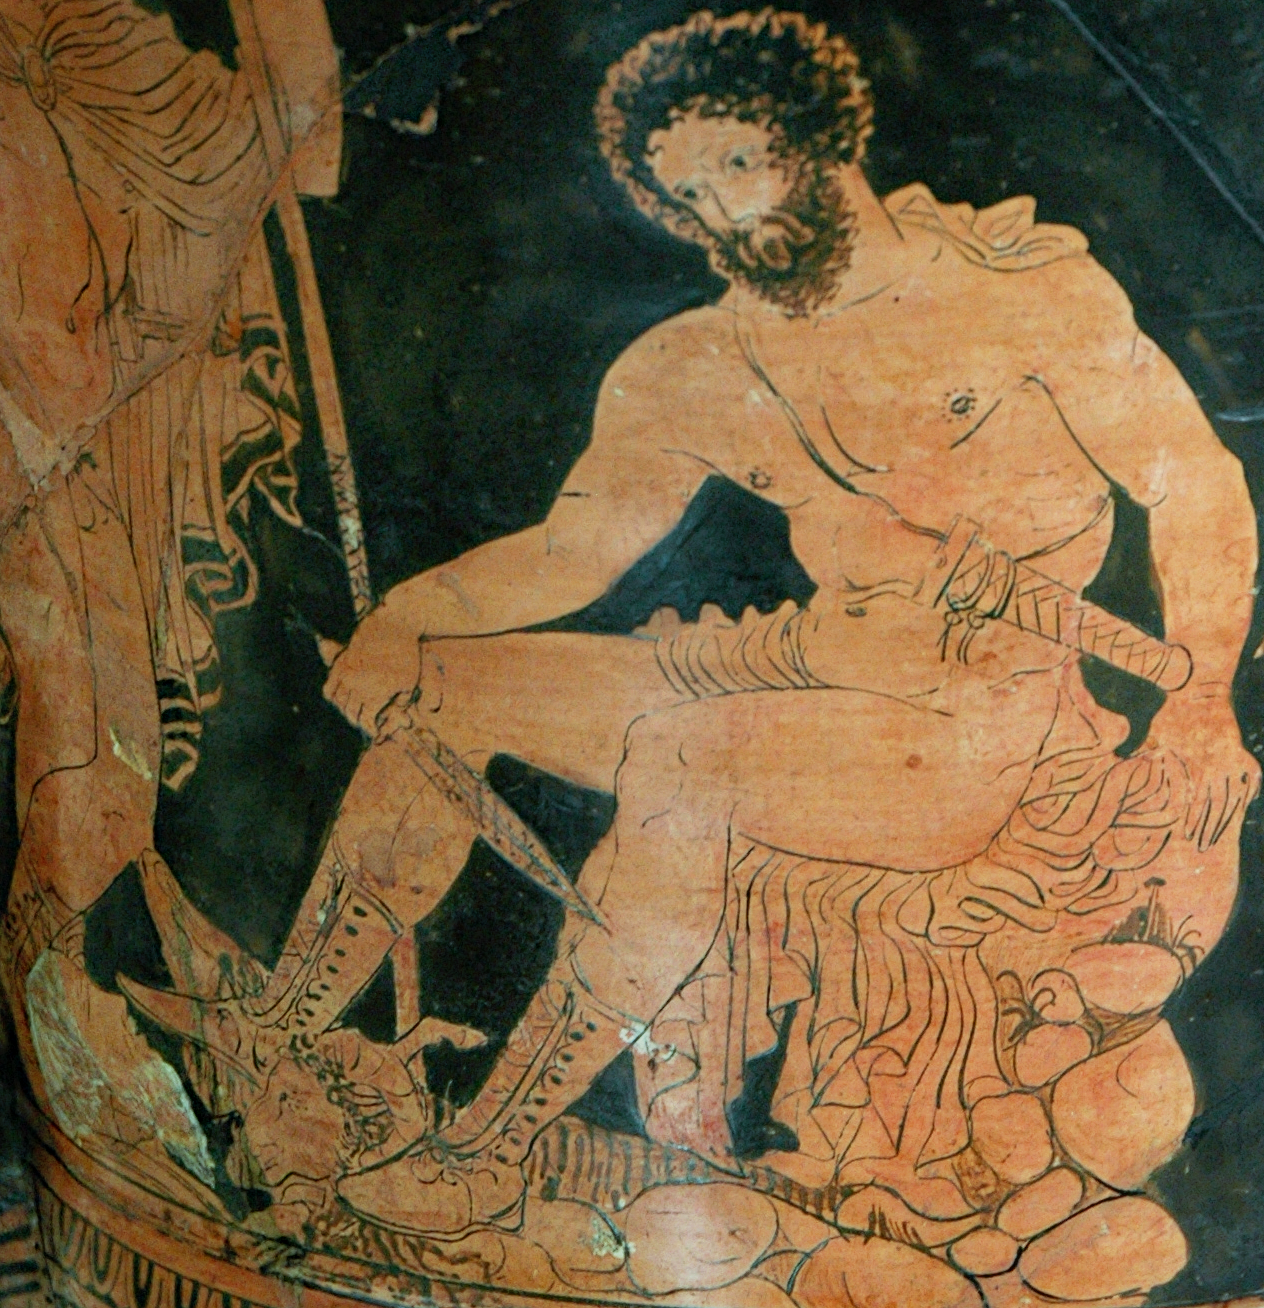 Odysseus_Tiresias_Cdm_Paris_422_cropped_glare_reduced